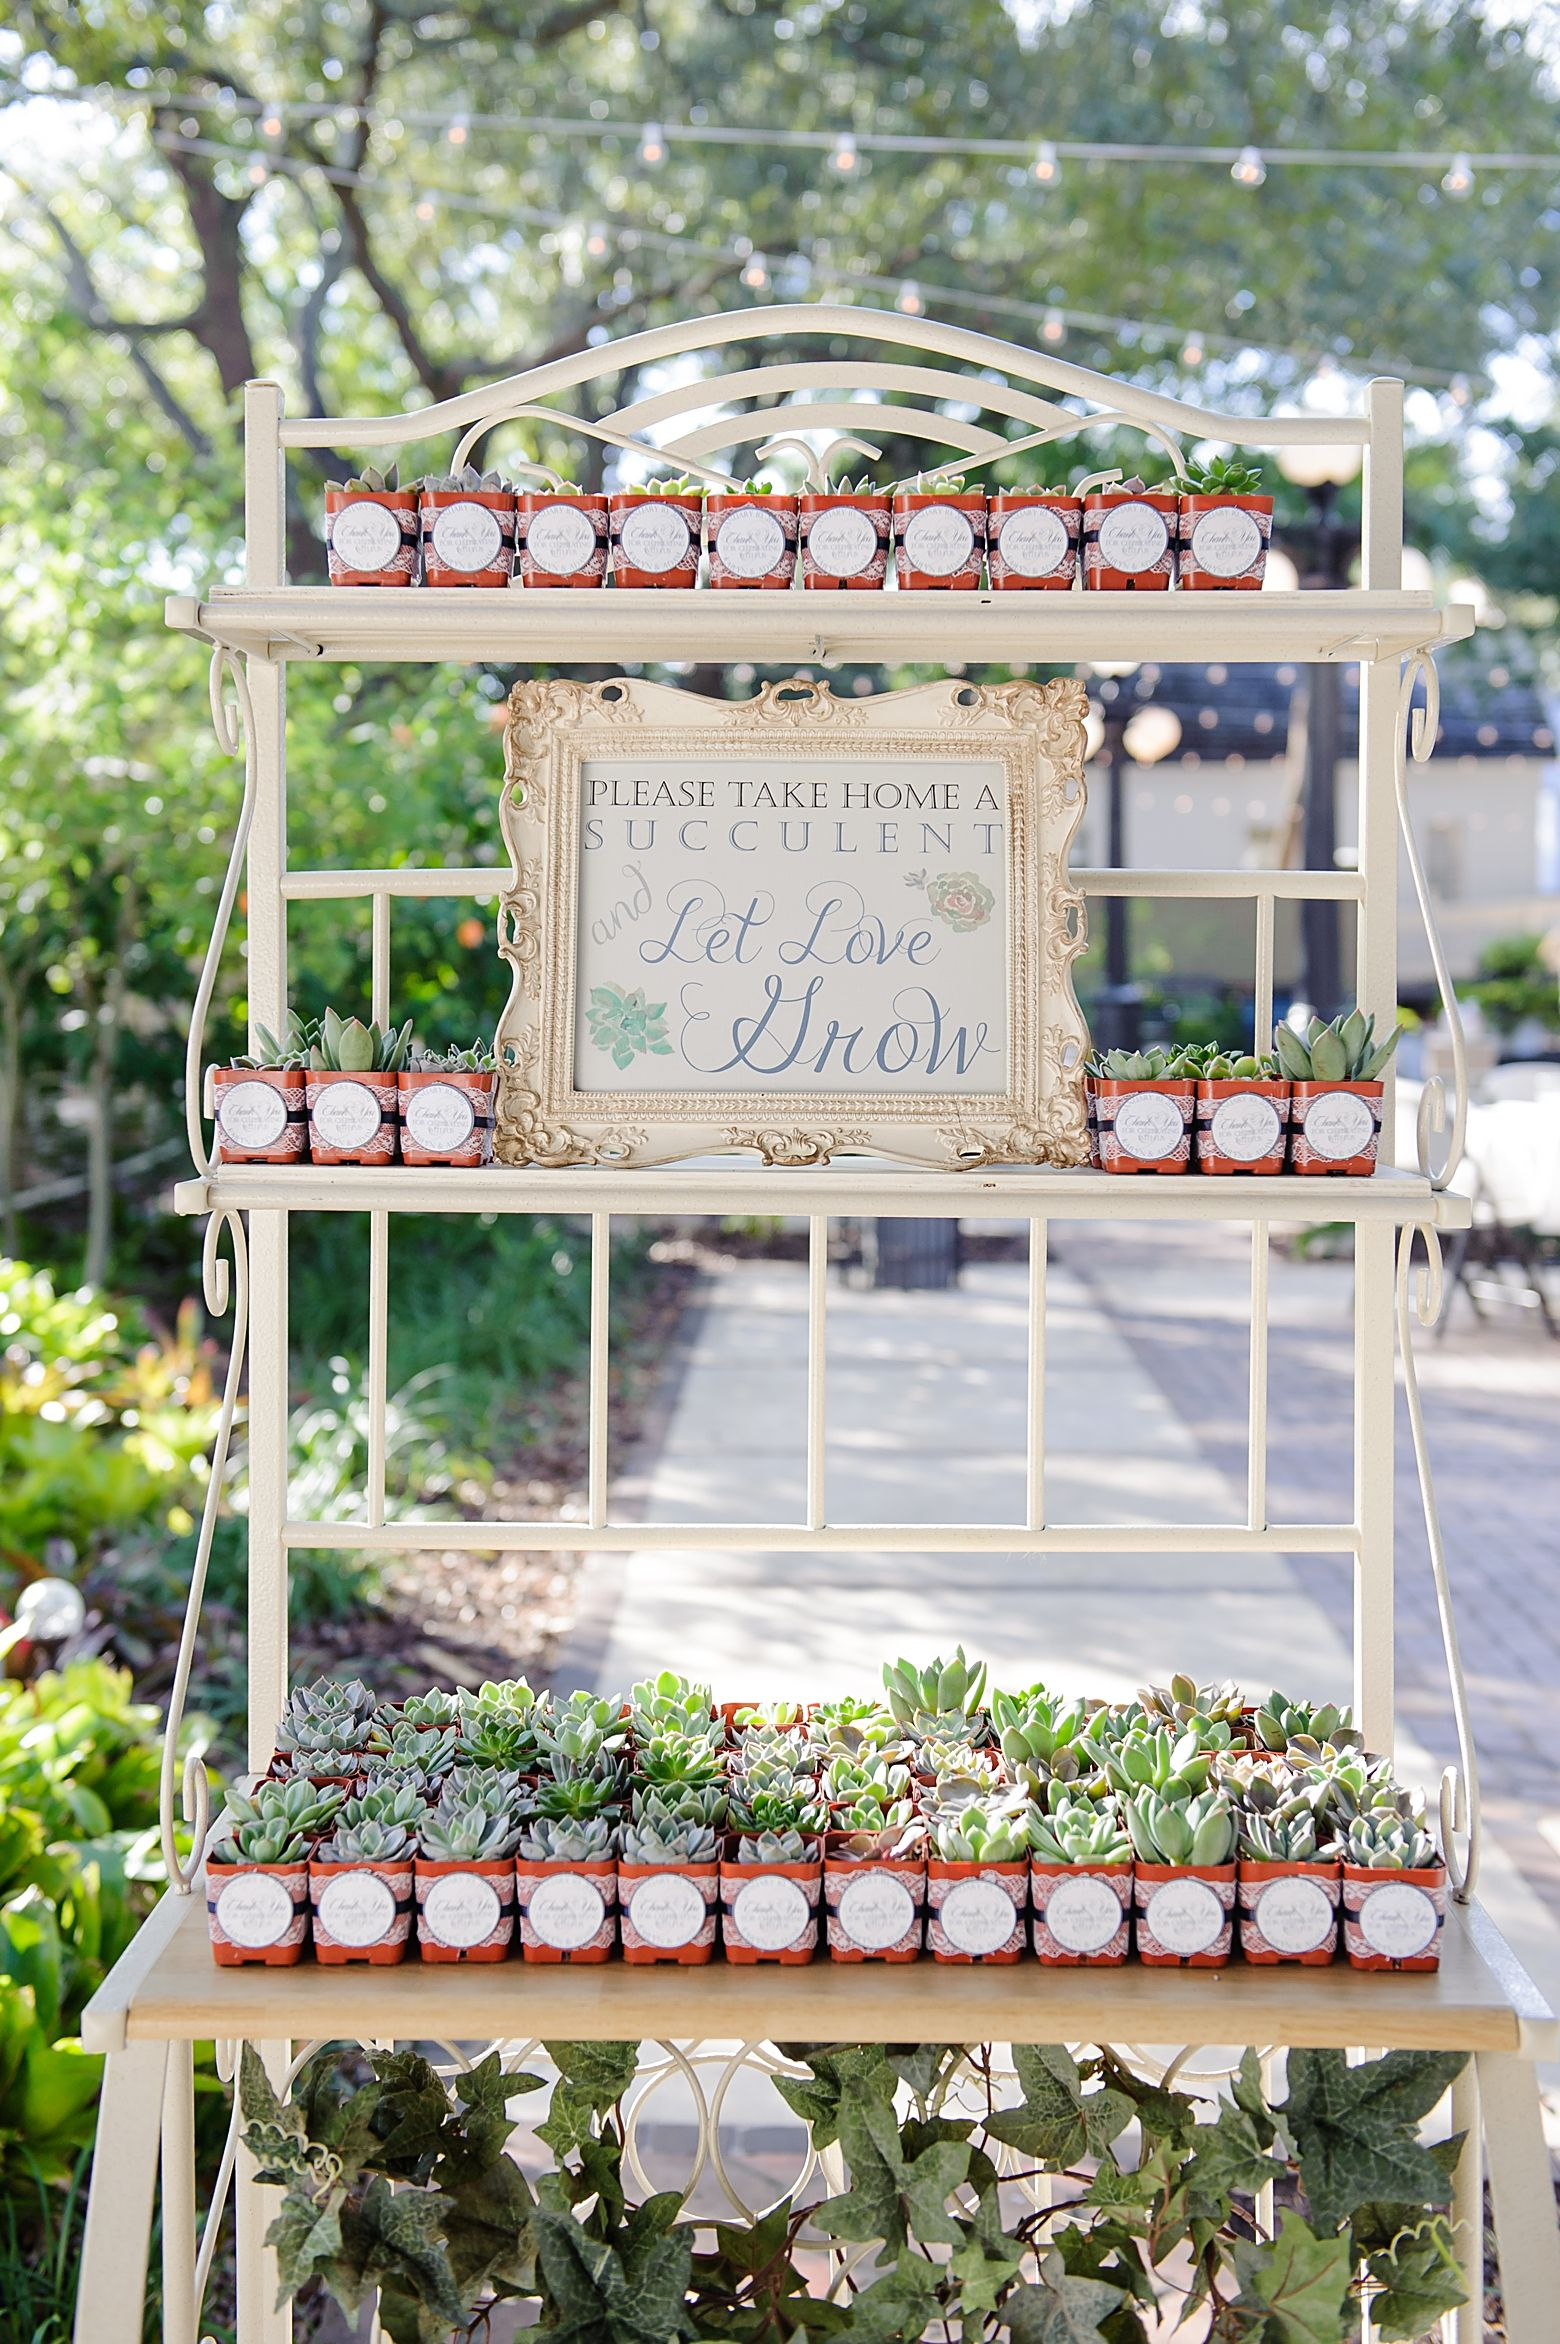 Intimate Garden Wedding At The Ybor Museum In Florida Captured By Sarah